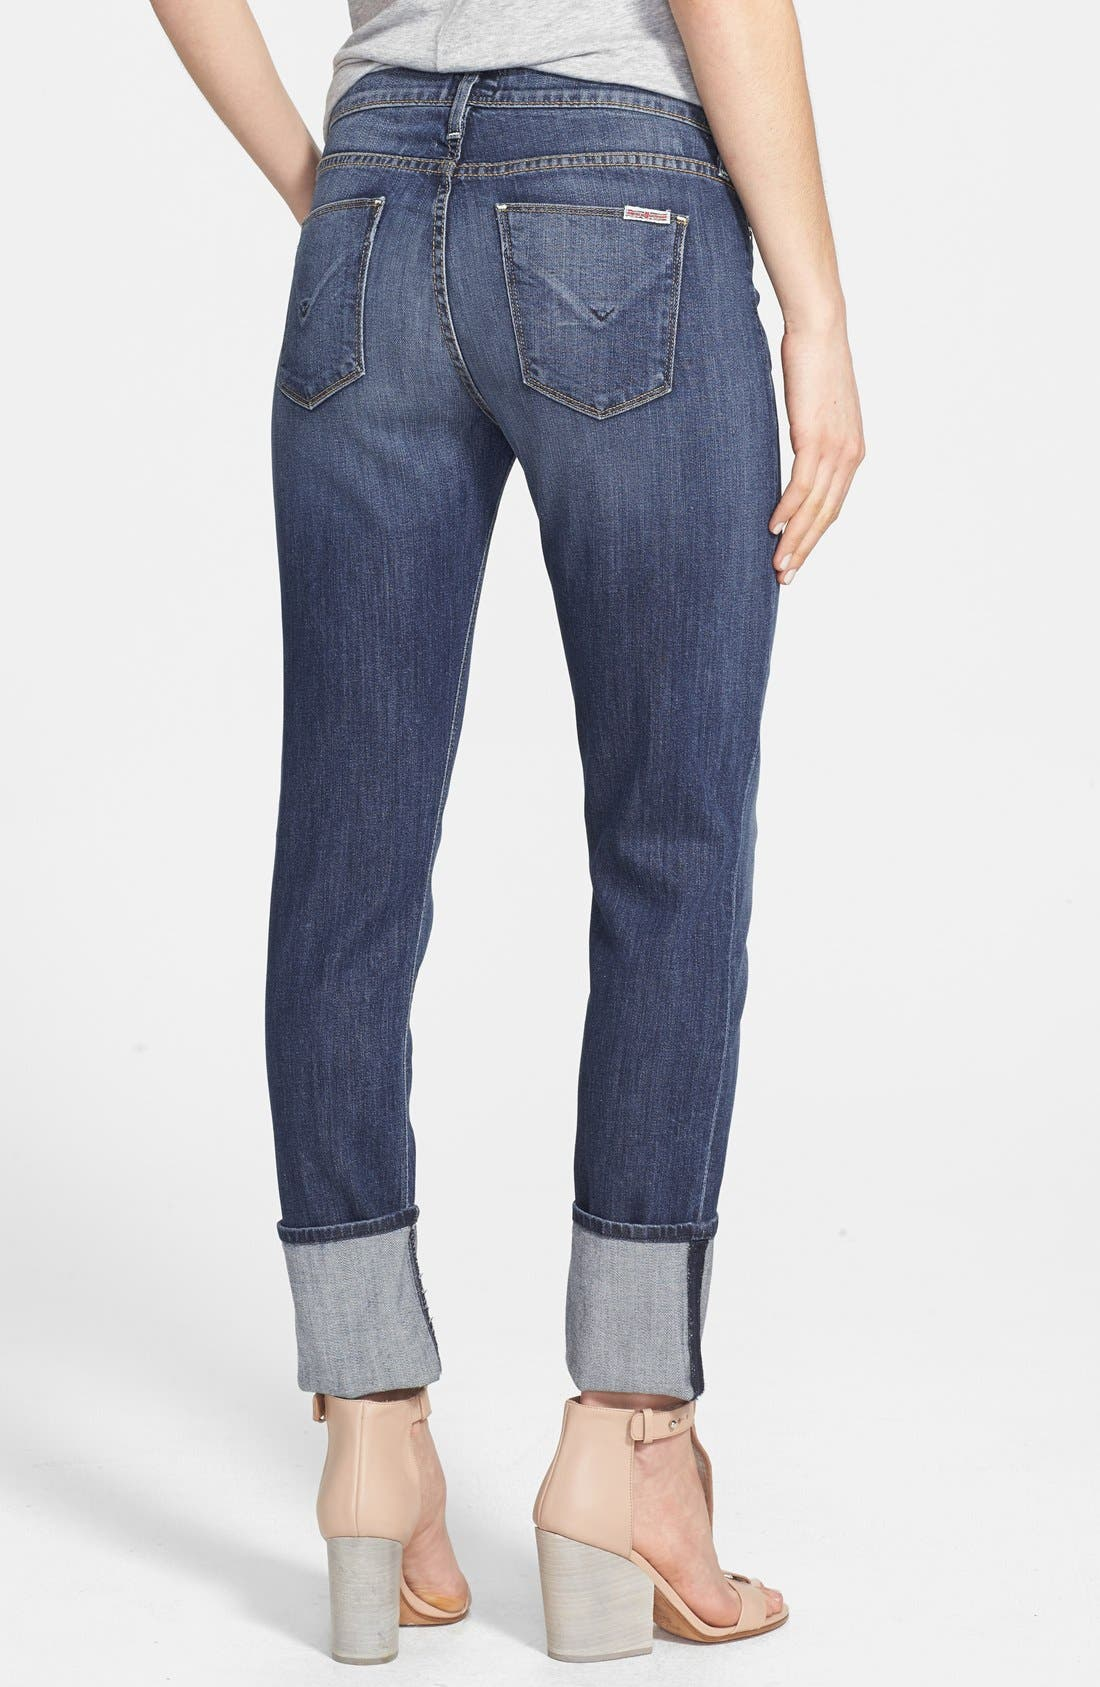 Alternate Image 2  - Hudson Jeans 'Muse' Cuff Crop Jeans (Indie)